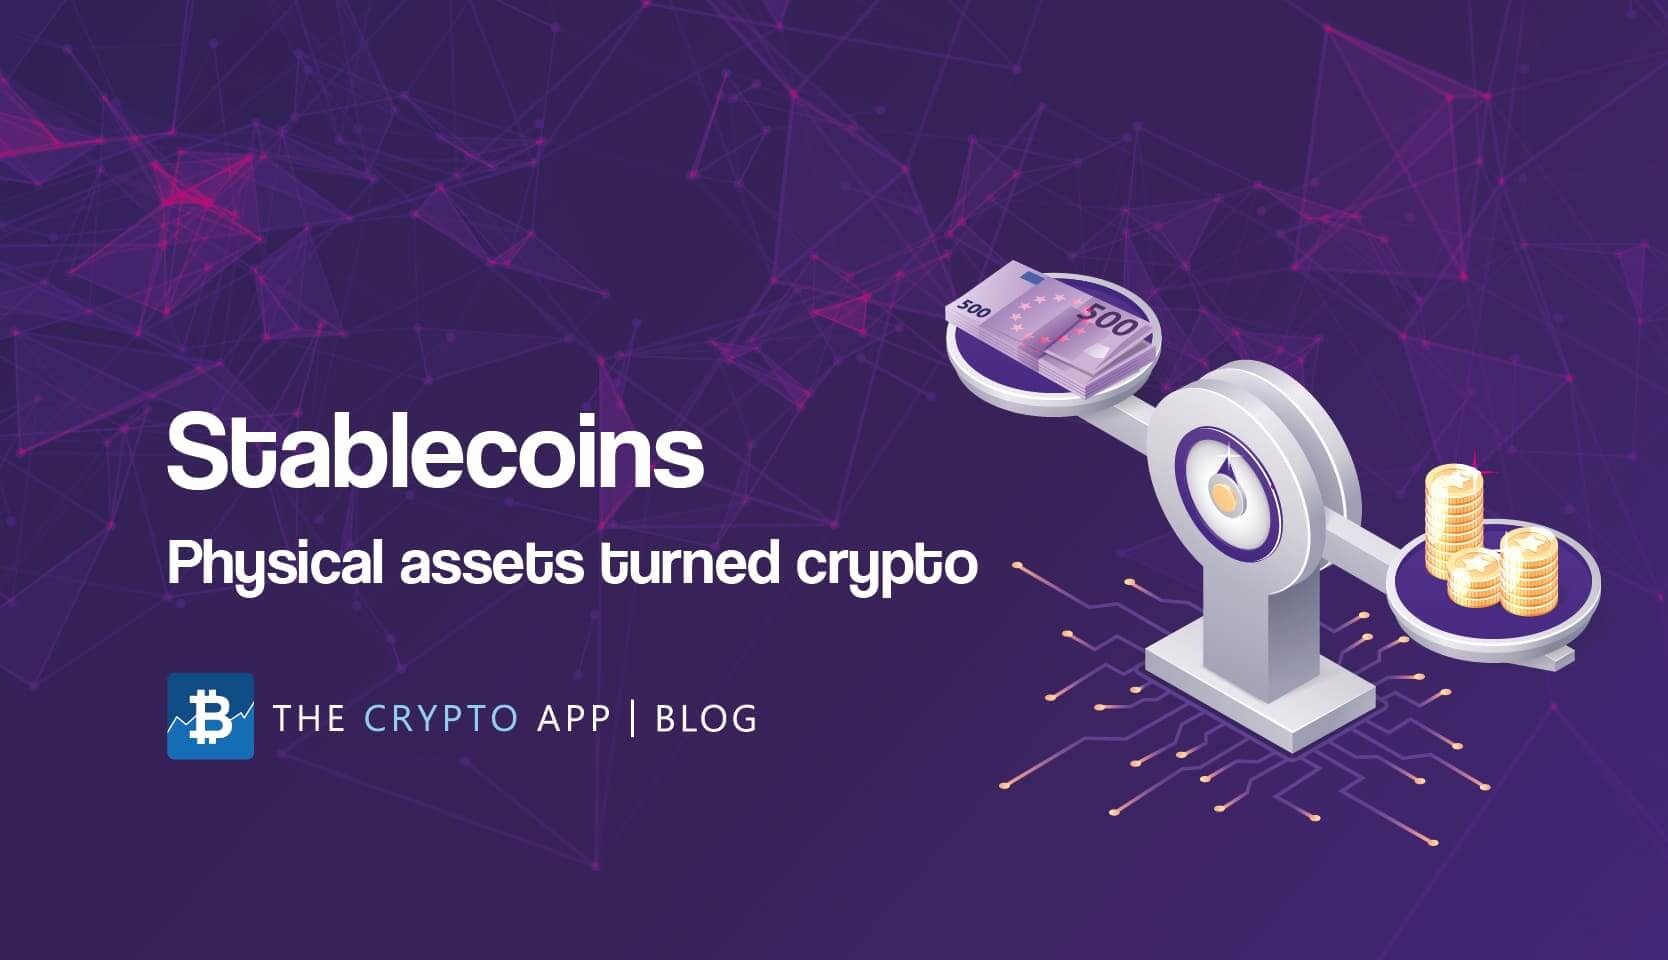 Stablecoins: Physical assets turned crypto